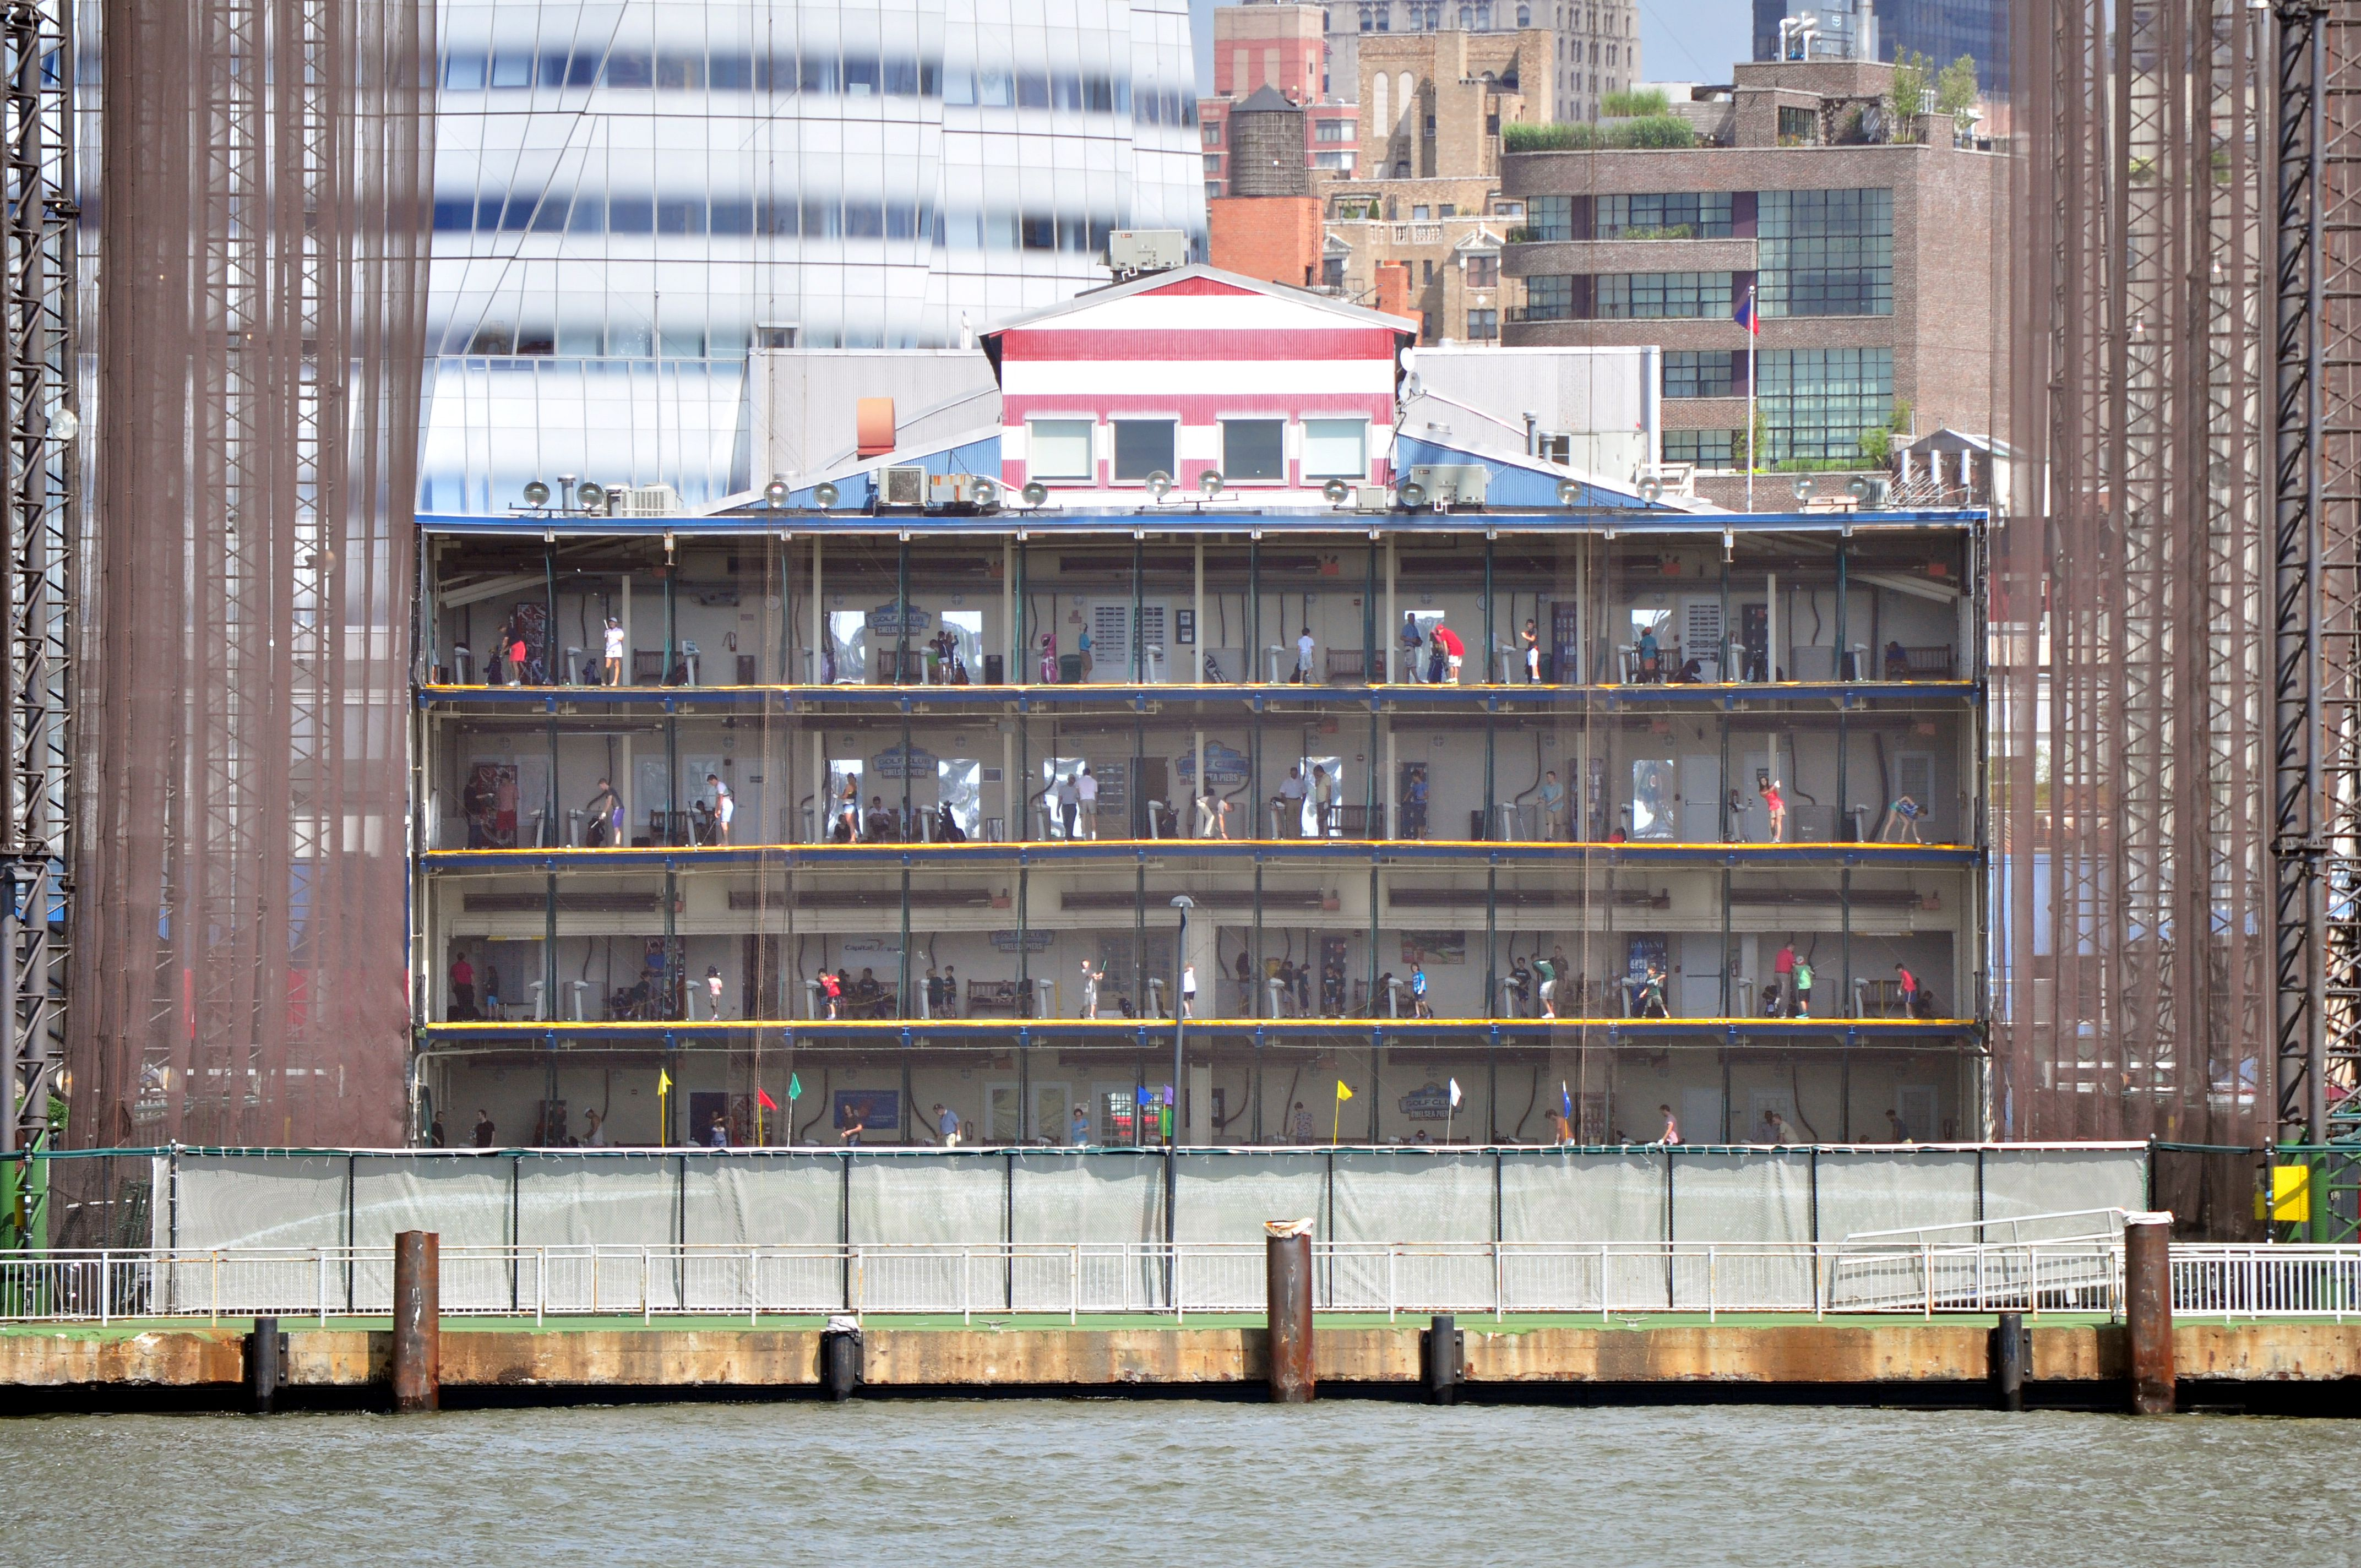 Driving range, Pier 59 (one of the Chelsea Piers) seen from New York Water Taxi on the Hudson River.